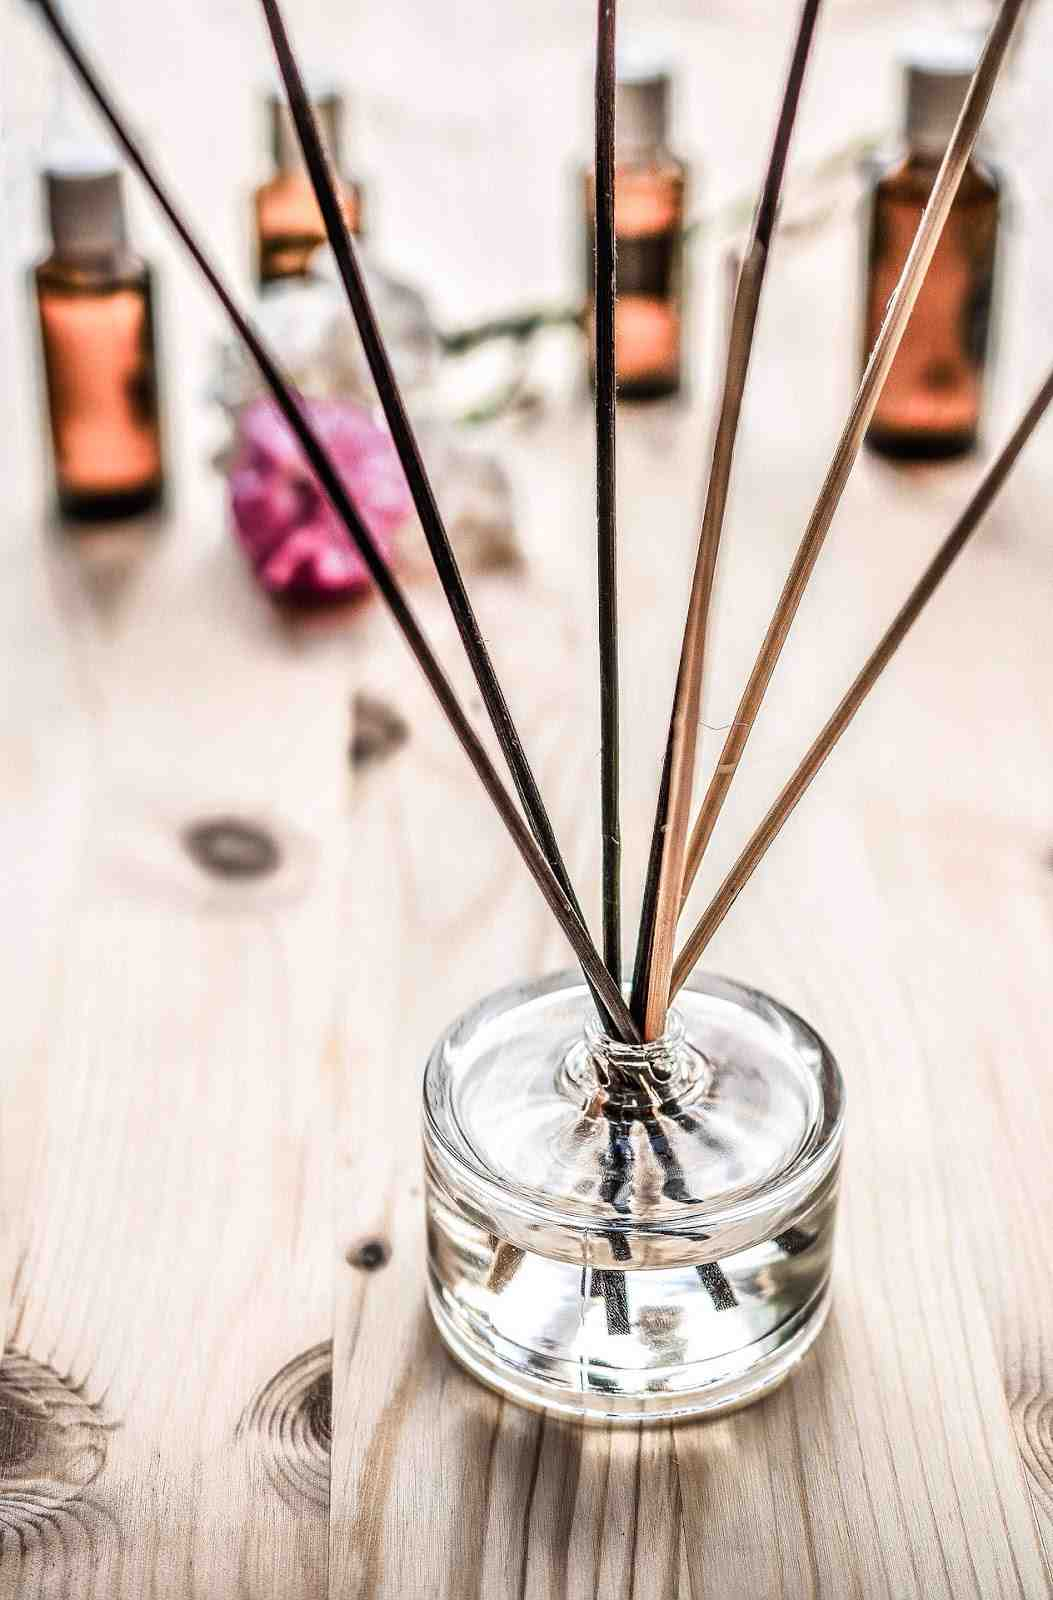 scent fragrance diffusers for the home